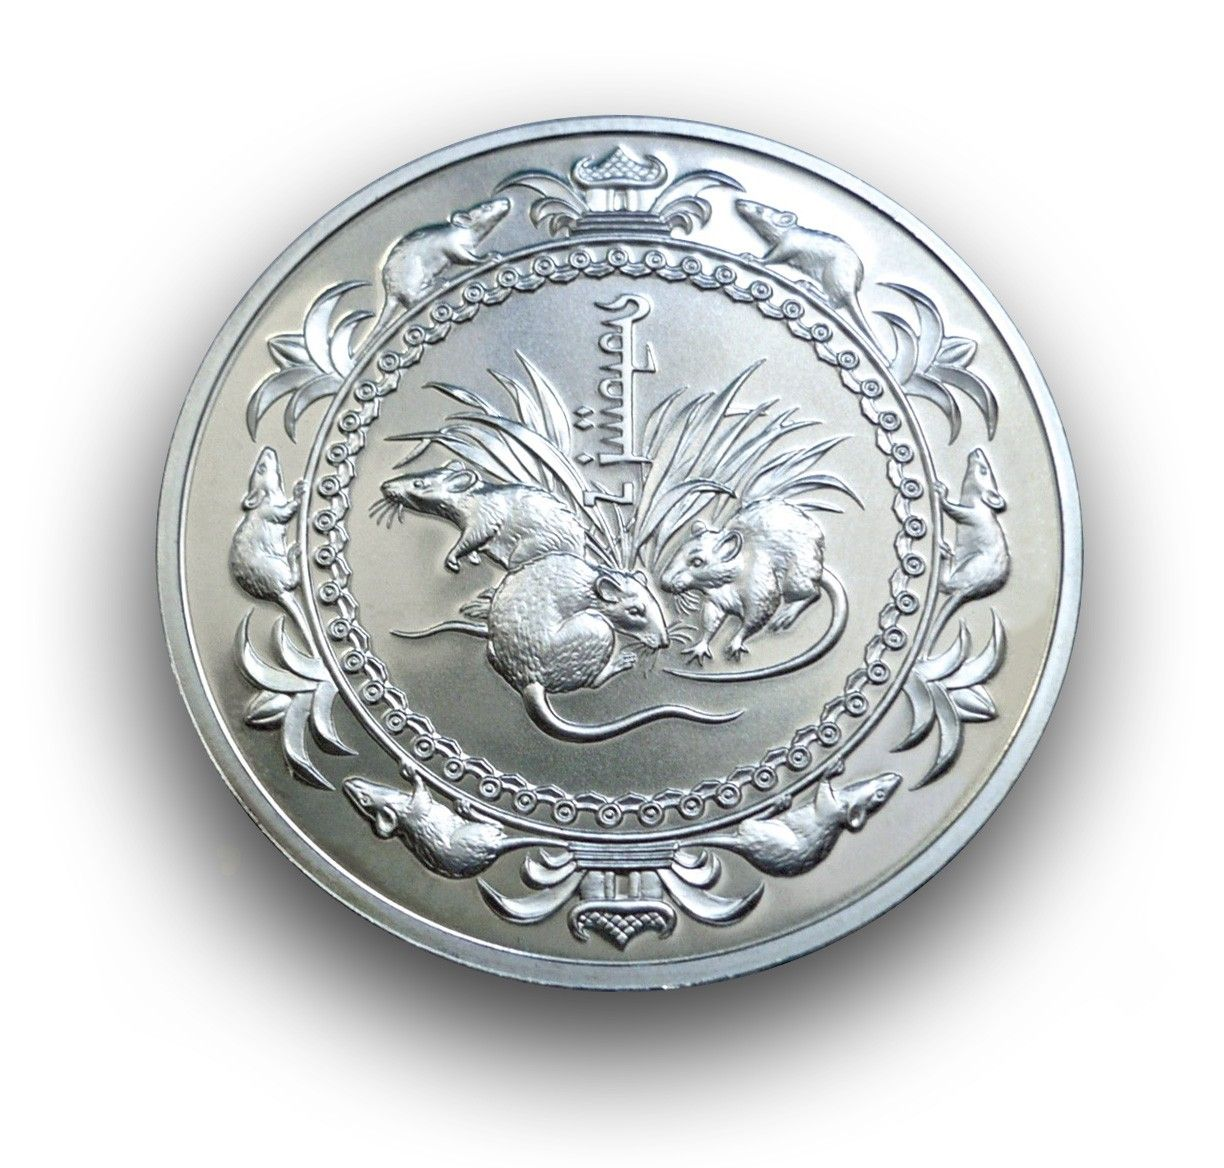 Where to buy silver -  1oz Silver Year Of Rat 2008 Coin Buy Online With Ipm Group